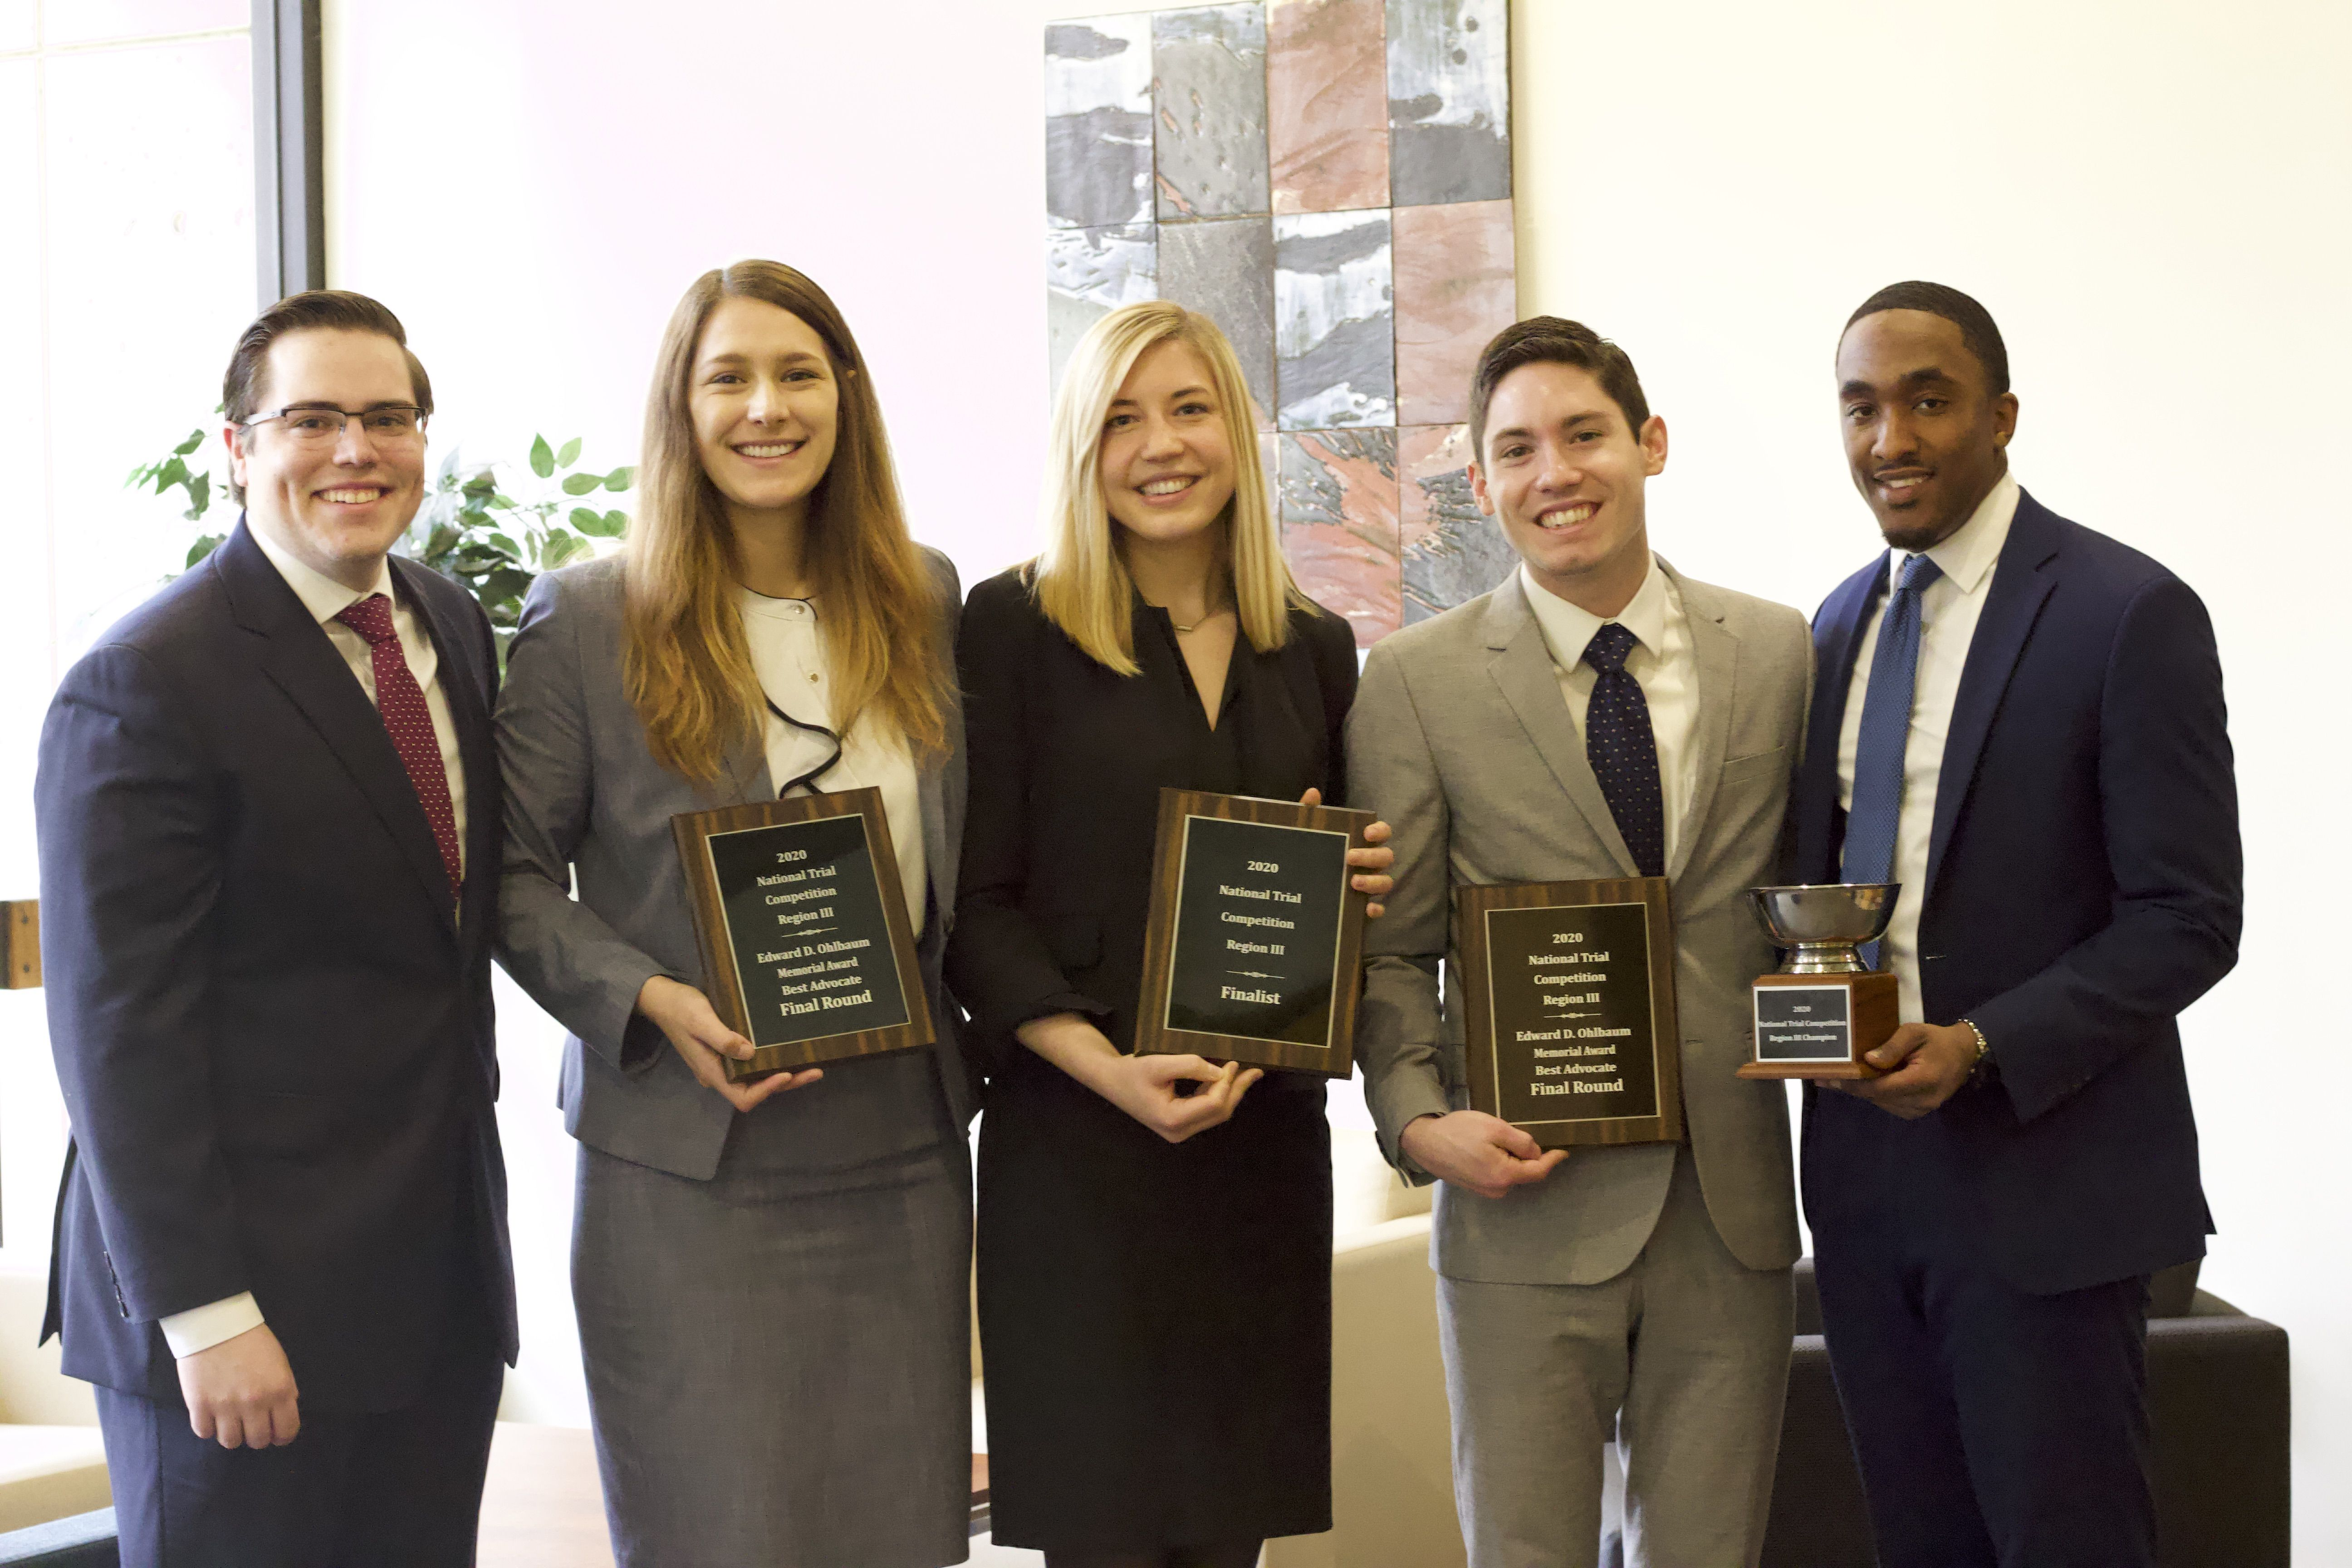 The 2020 Temple Law National Trial Team shows off some hardware after their commanding performances in the Regional III Championships of the National Trial Competition.